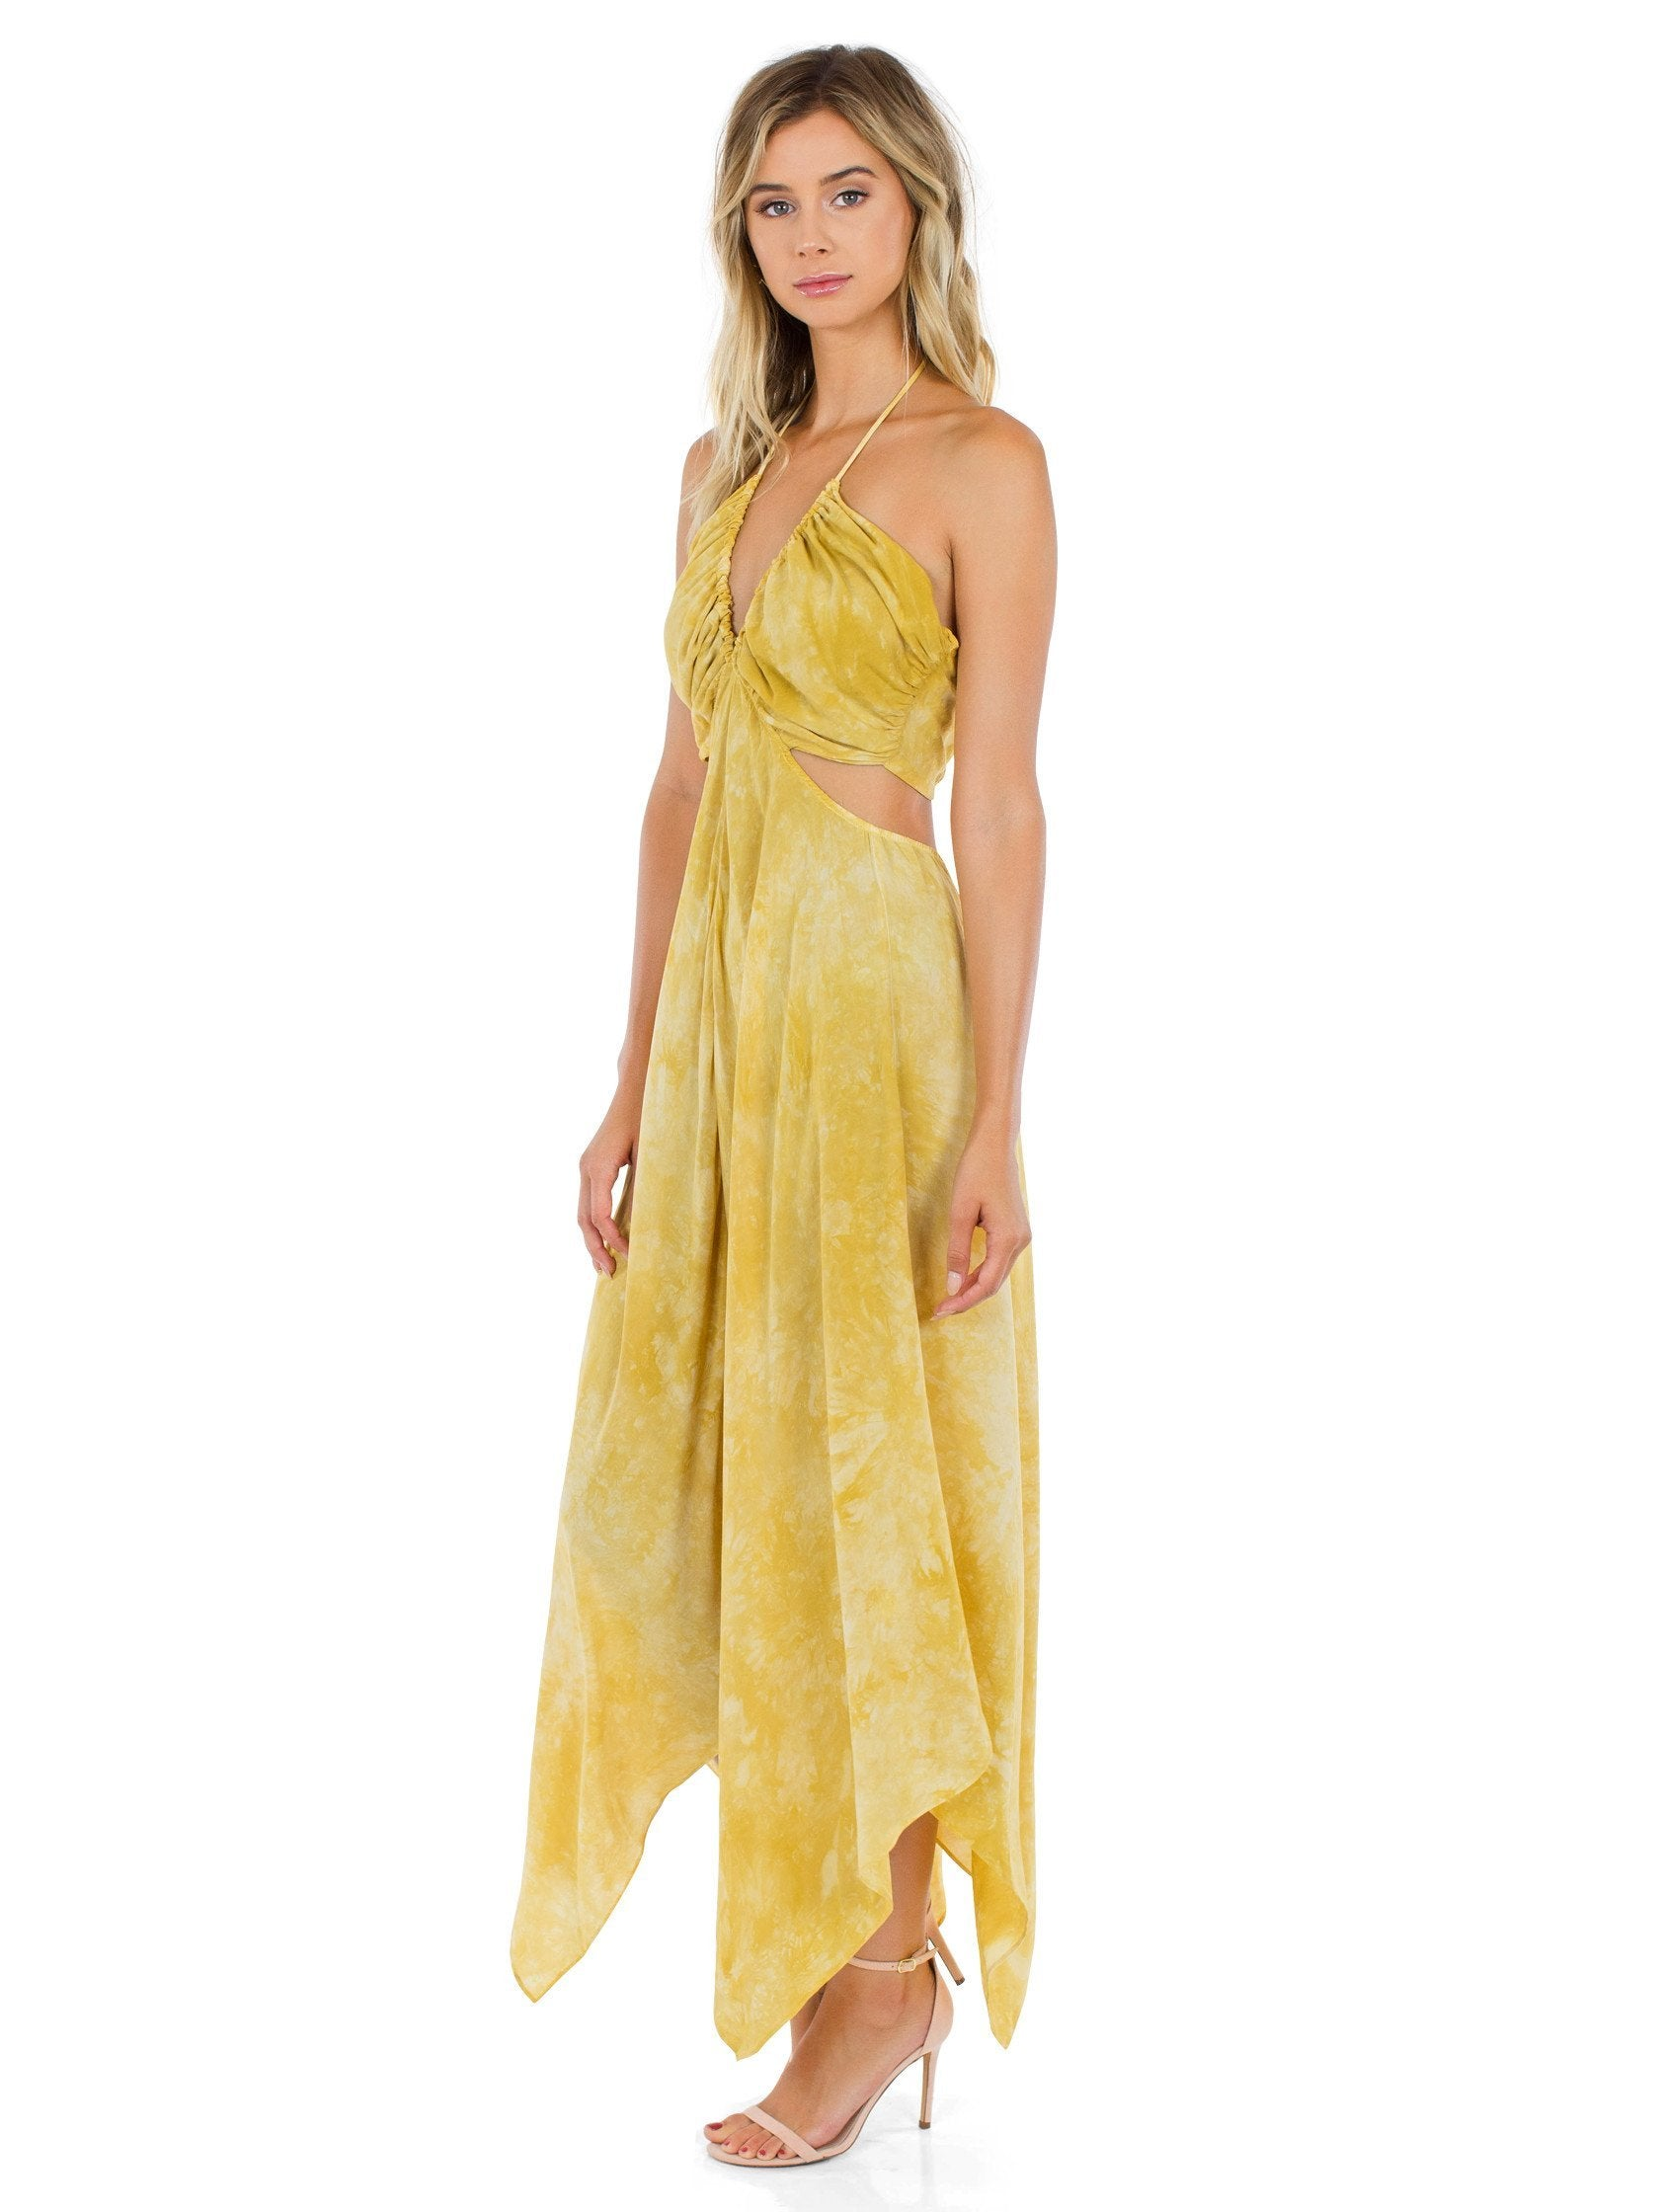 Woman wearing a dress rental from Blue Life called Summer Breeze Halter Maxi